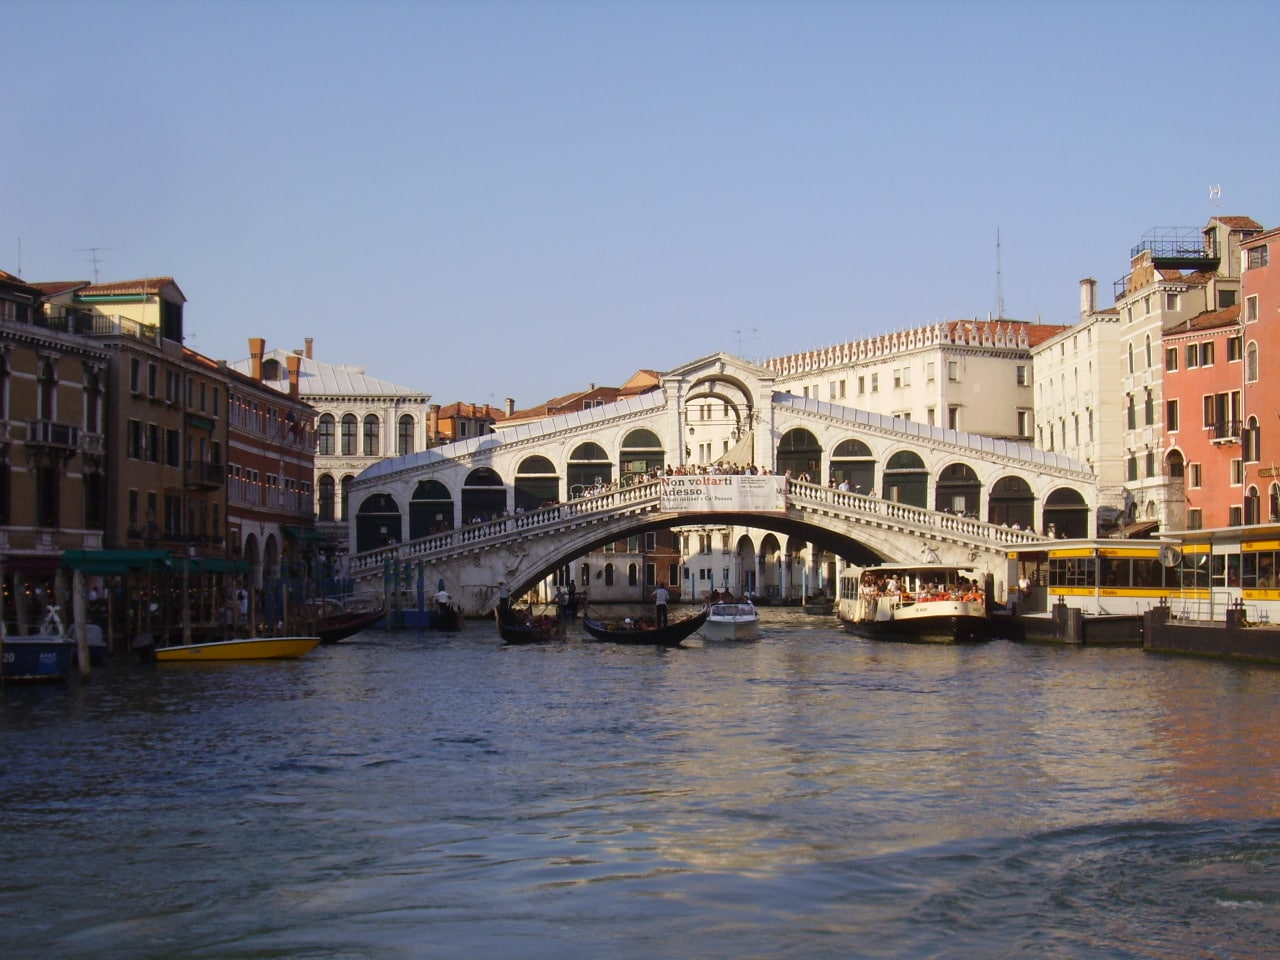 The Grand Canal and the Rialto Bridge - Wandering Life